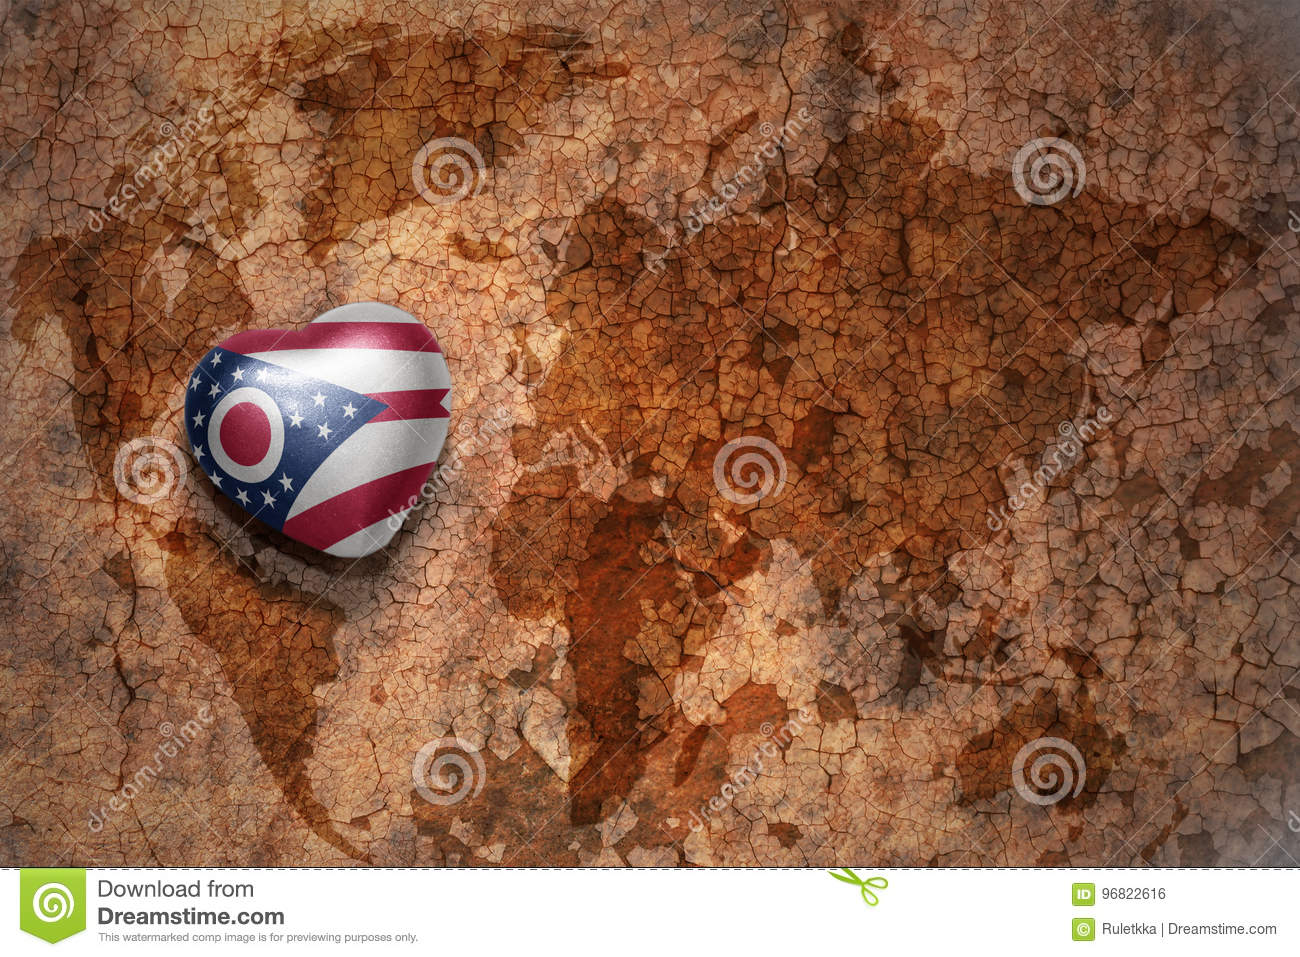 Heart with ohio state flag on a vintage world map crack paper background